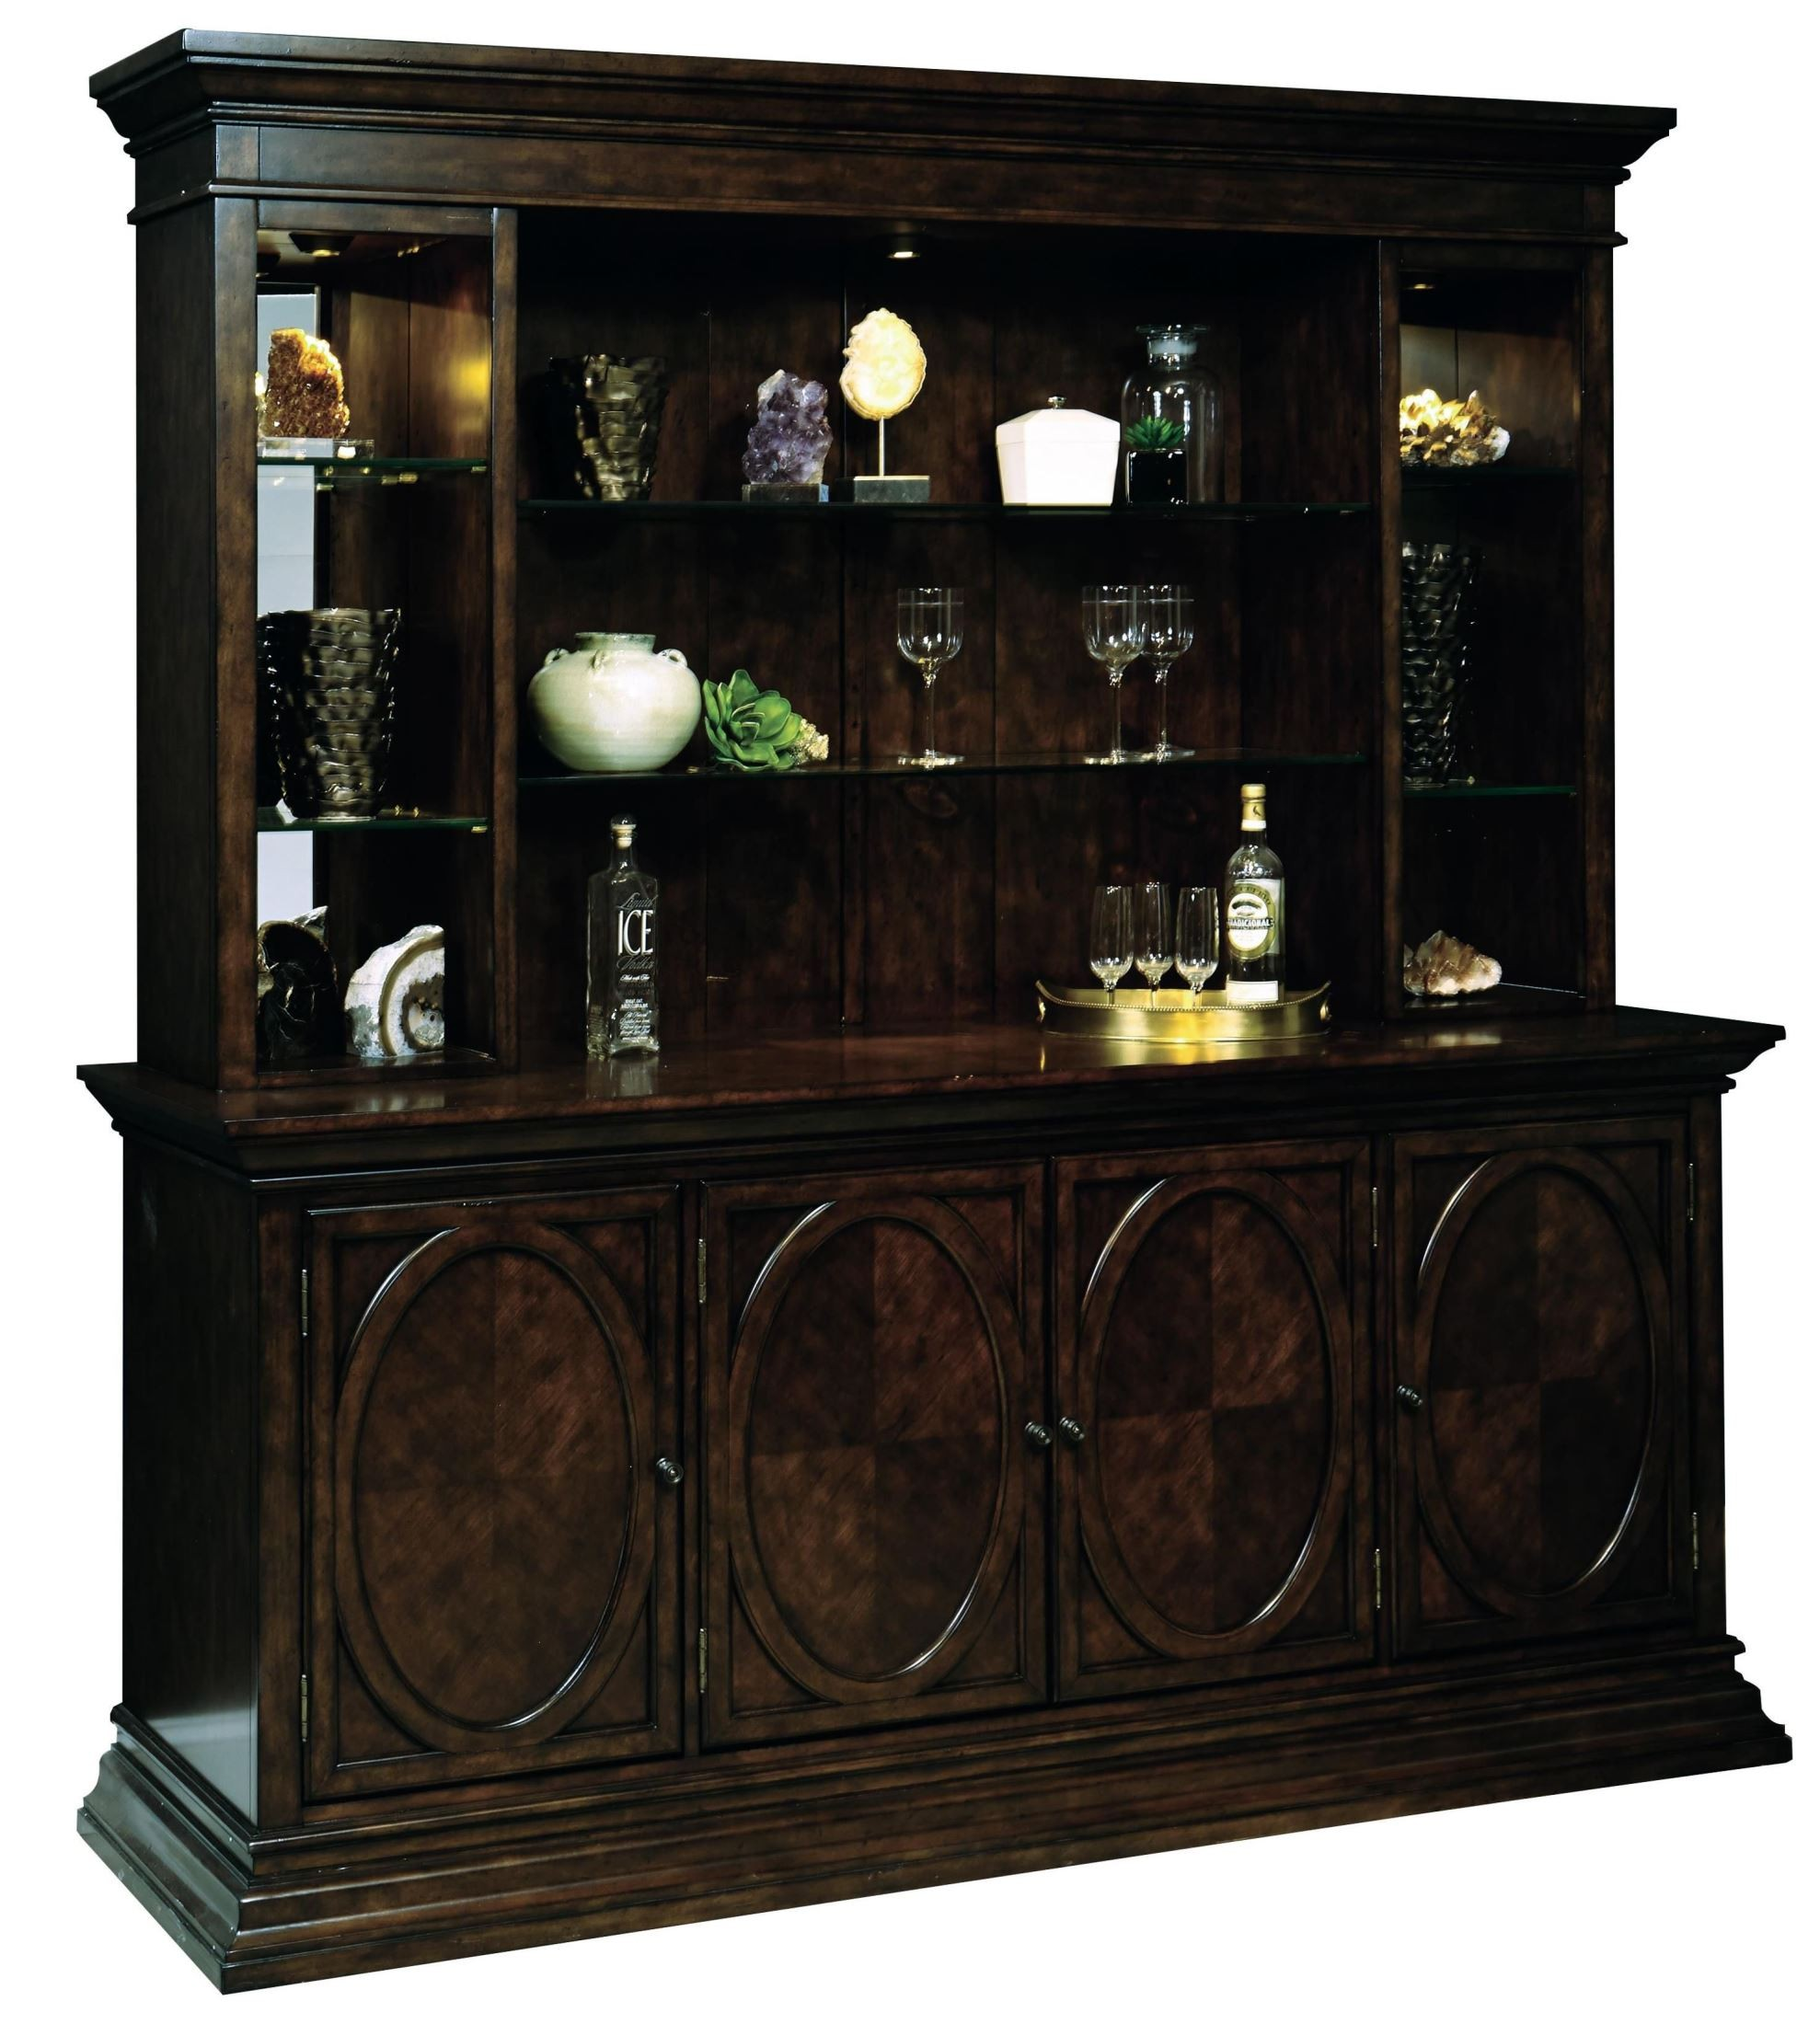 Westford Bar Cabinet With Piers From Pulaski 675912 14 13 Coleman Furniture